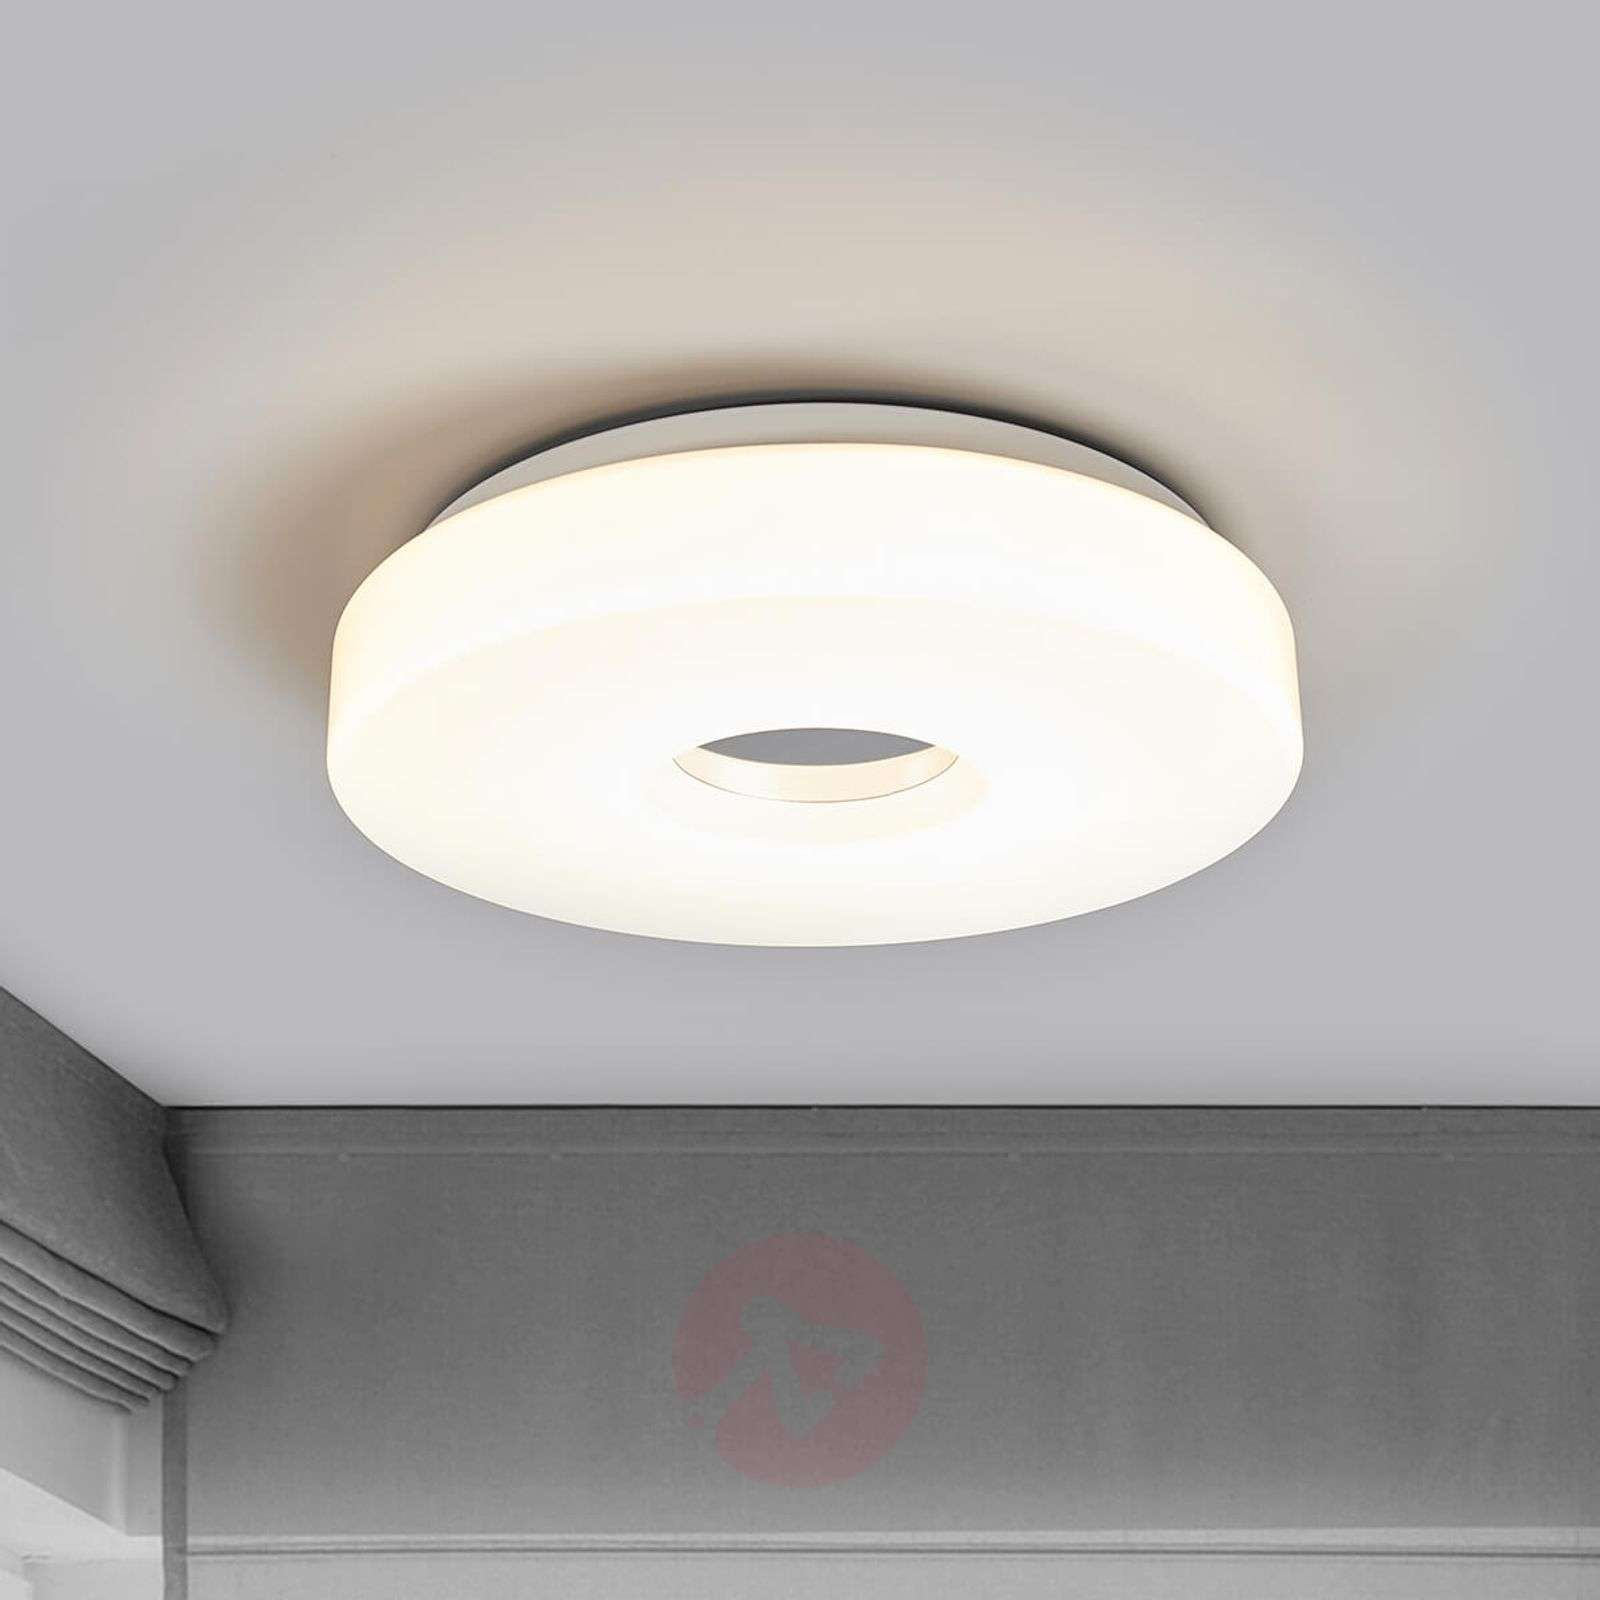 LED ceiling lamp Levina with chrome centre-9974020-01